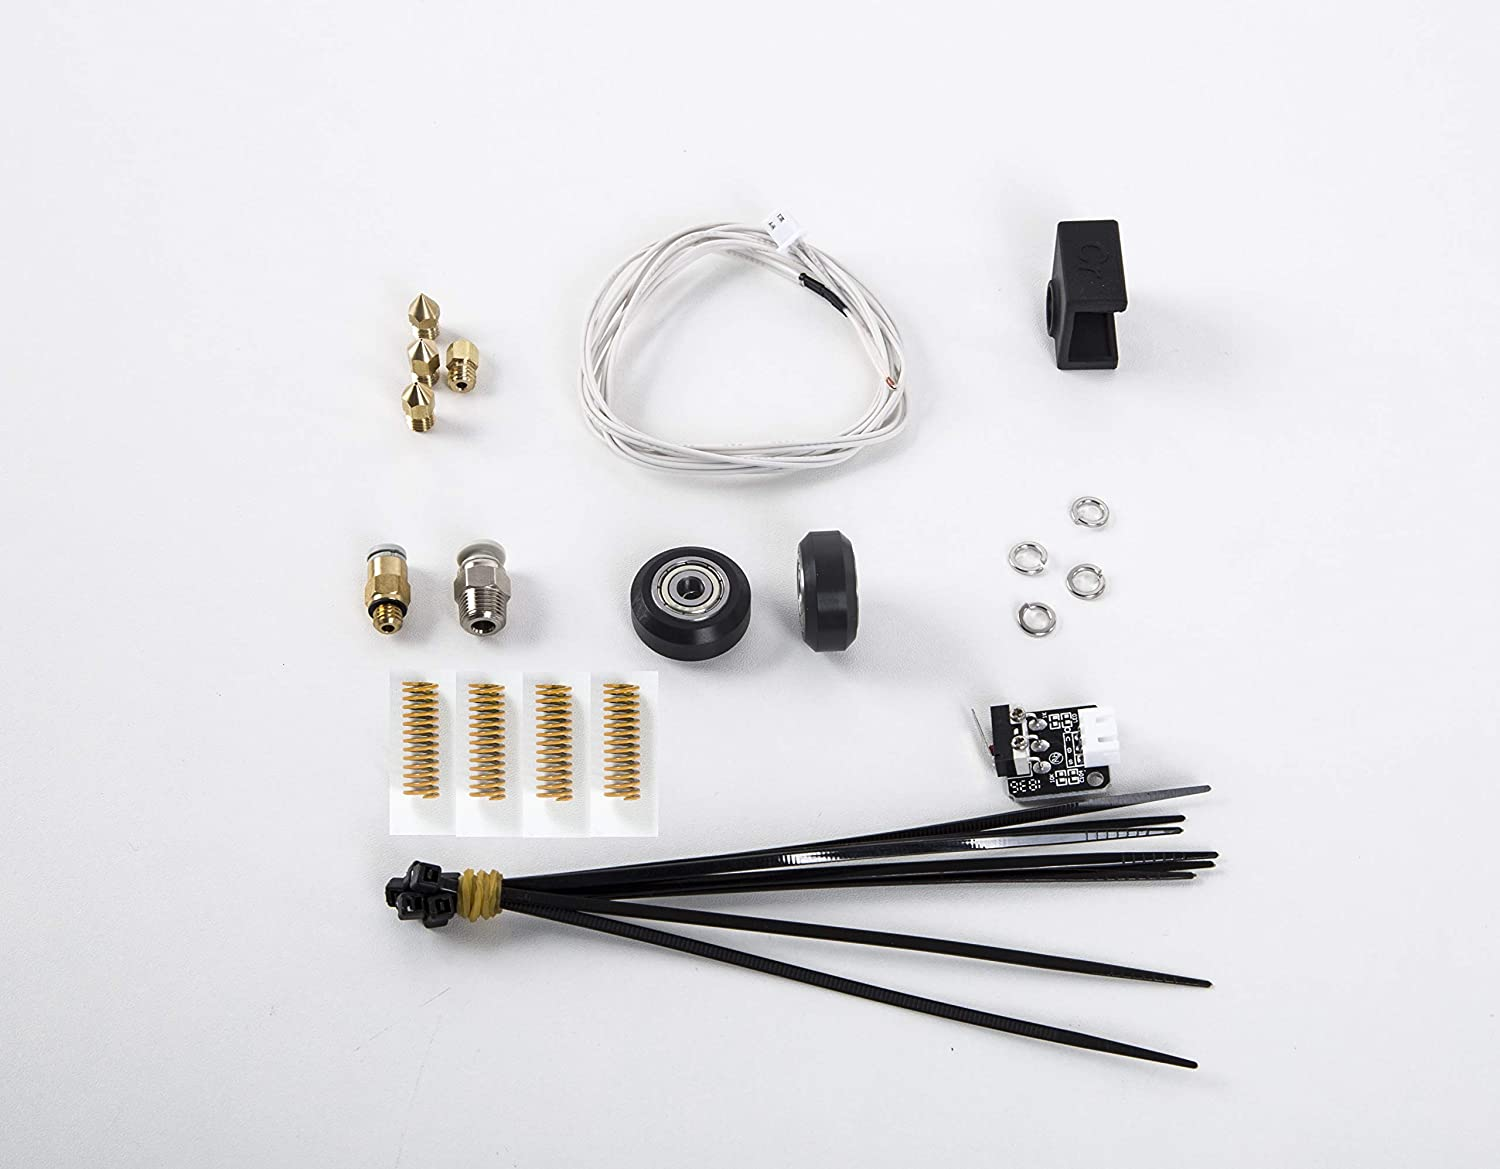 Official Creality Ender 3 Upgrade and Spare Parts Pack 9-in-1 Accessories Kit Creality 3D